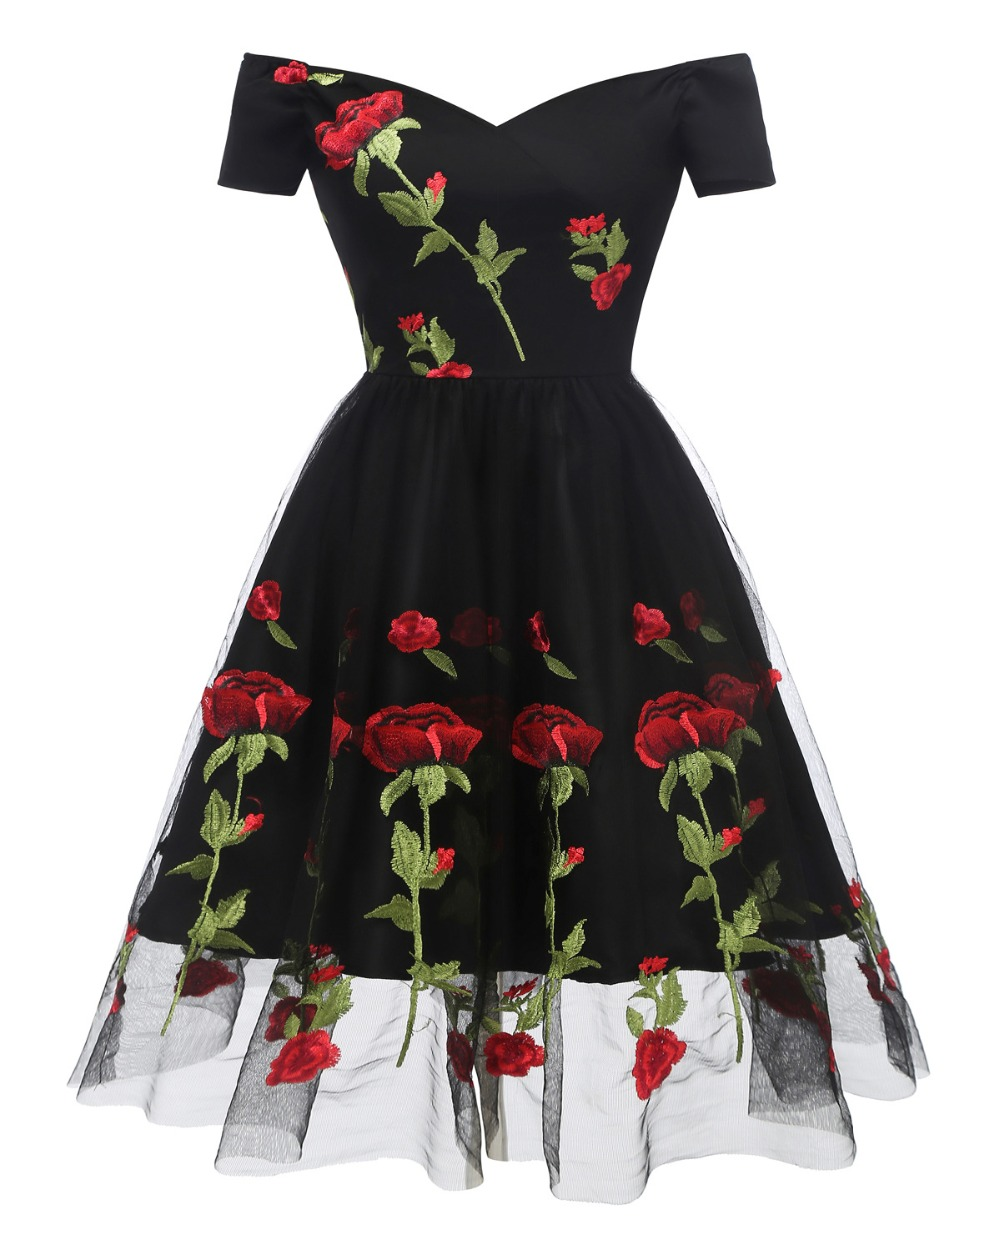 Womens Off the Shoulder Evening Party Dresses Slash Neck Floral Embroidery Mesh Vintage Dress Short Sleeve Sexy Dress